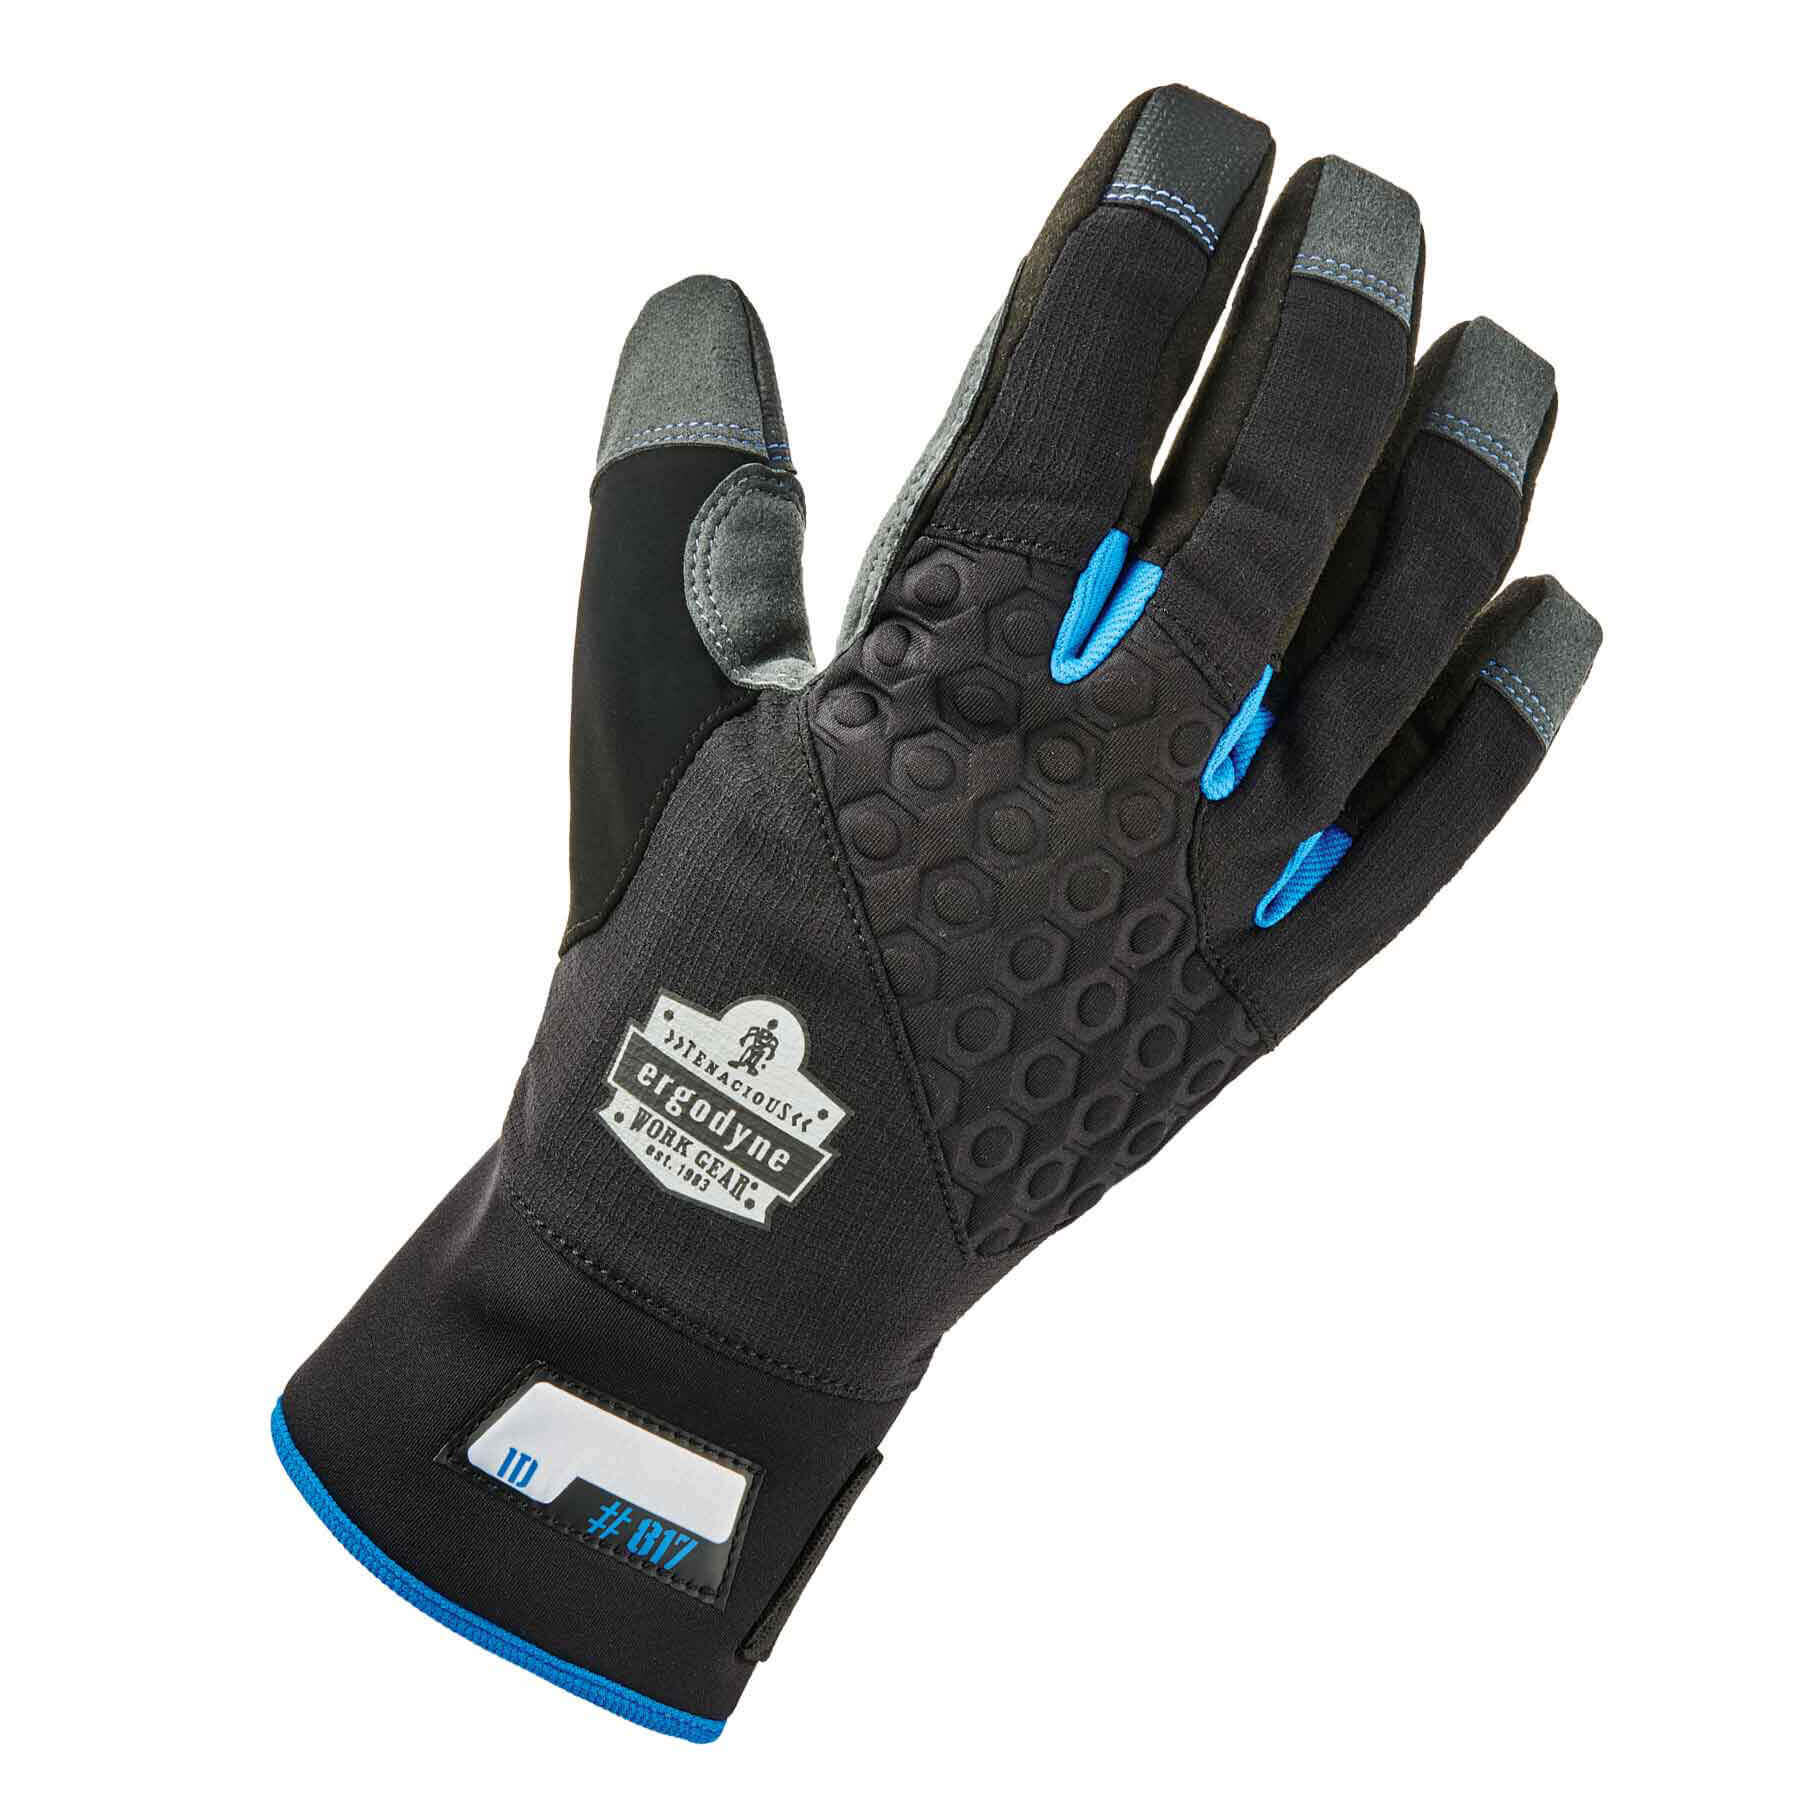 Ergodyne ProFlex 817 Reinforced Thermal Winter Work Gloves, Touchscreen Capable, Black, Small